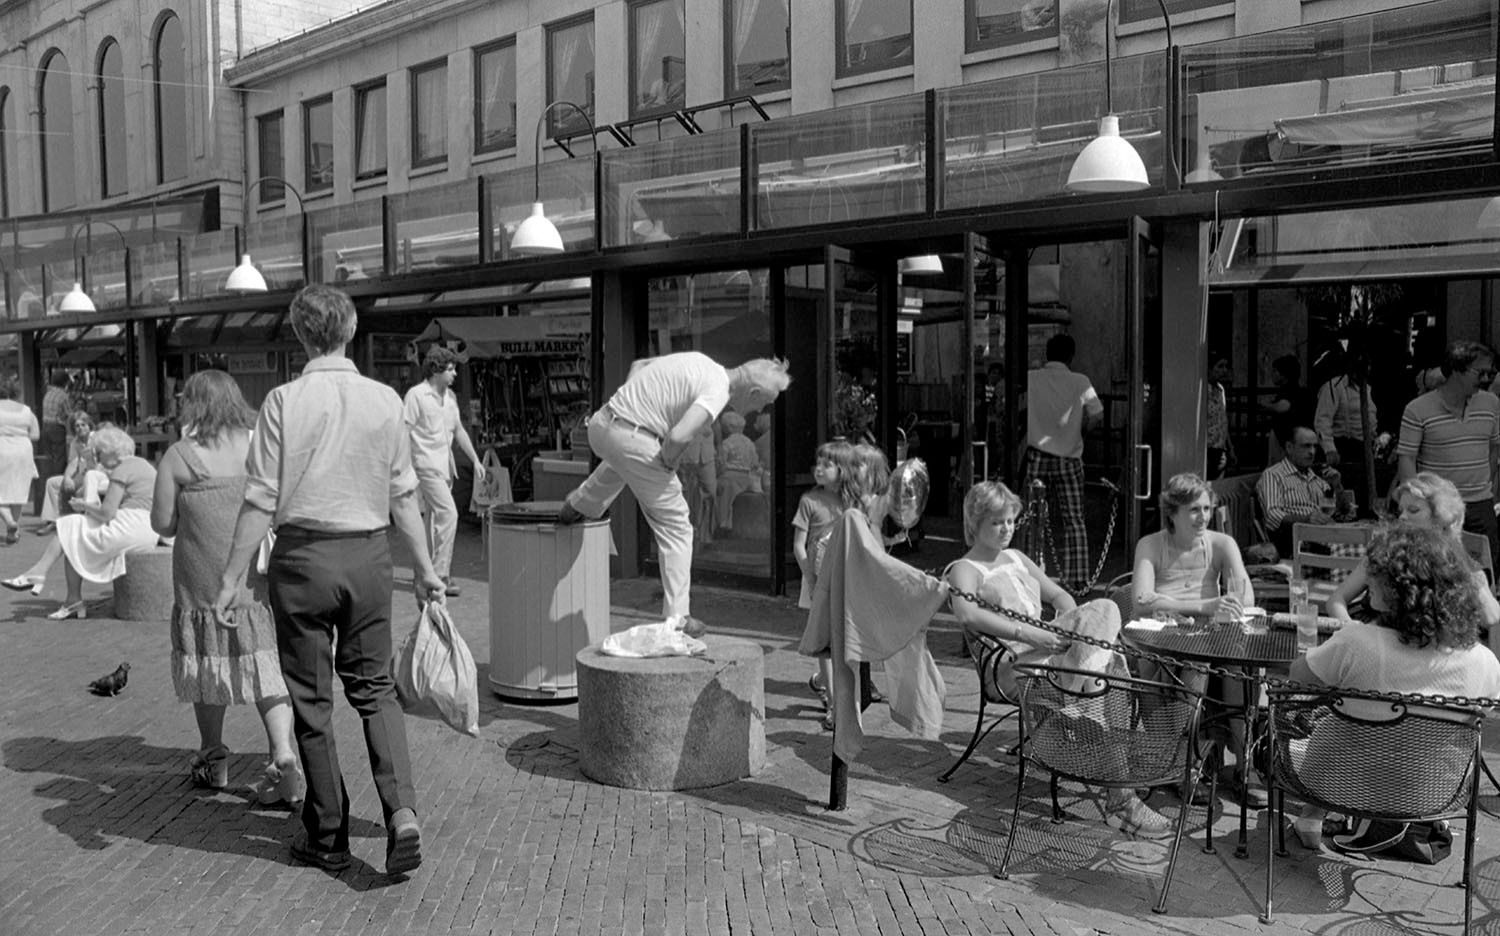 Disorderly Man, Faneuil Hall Marketplace 1970's